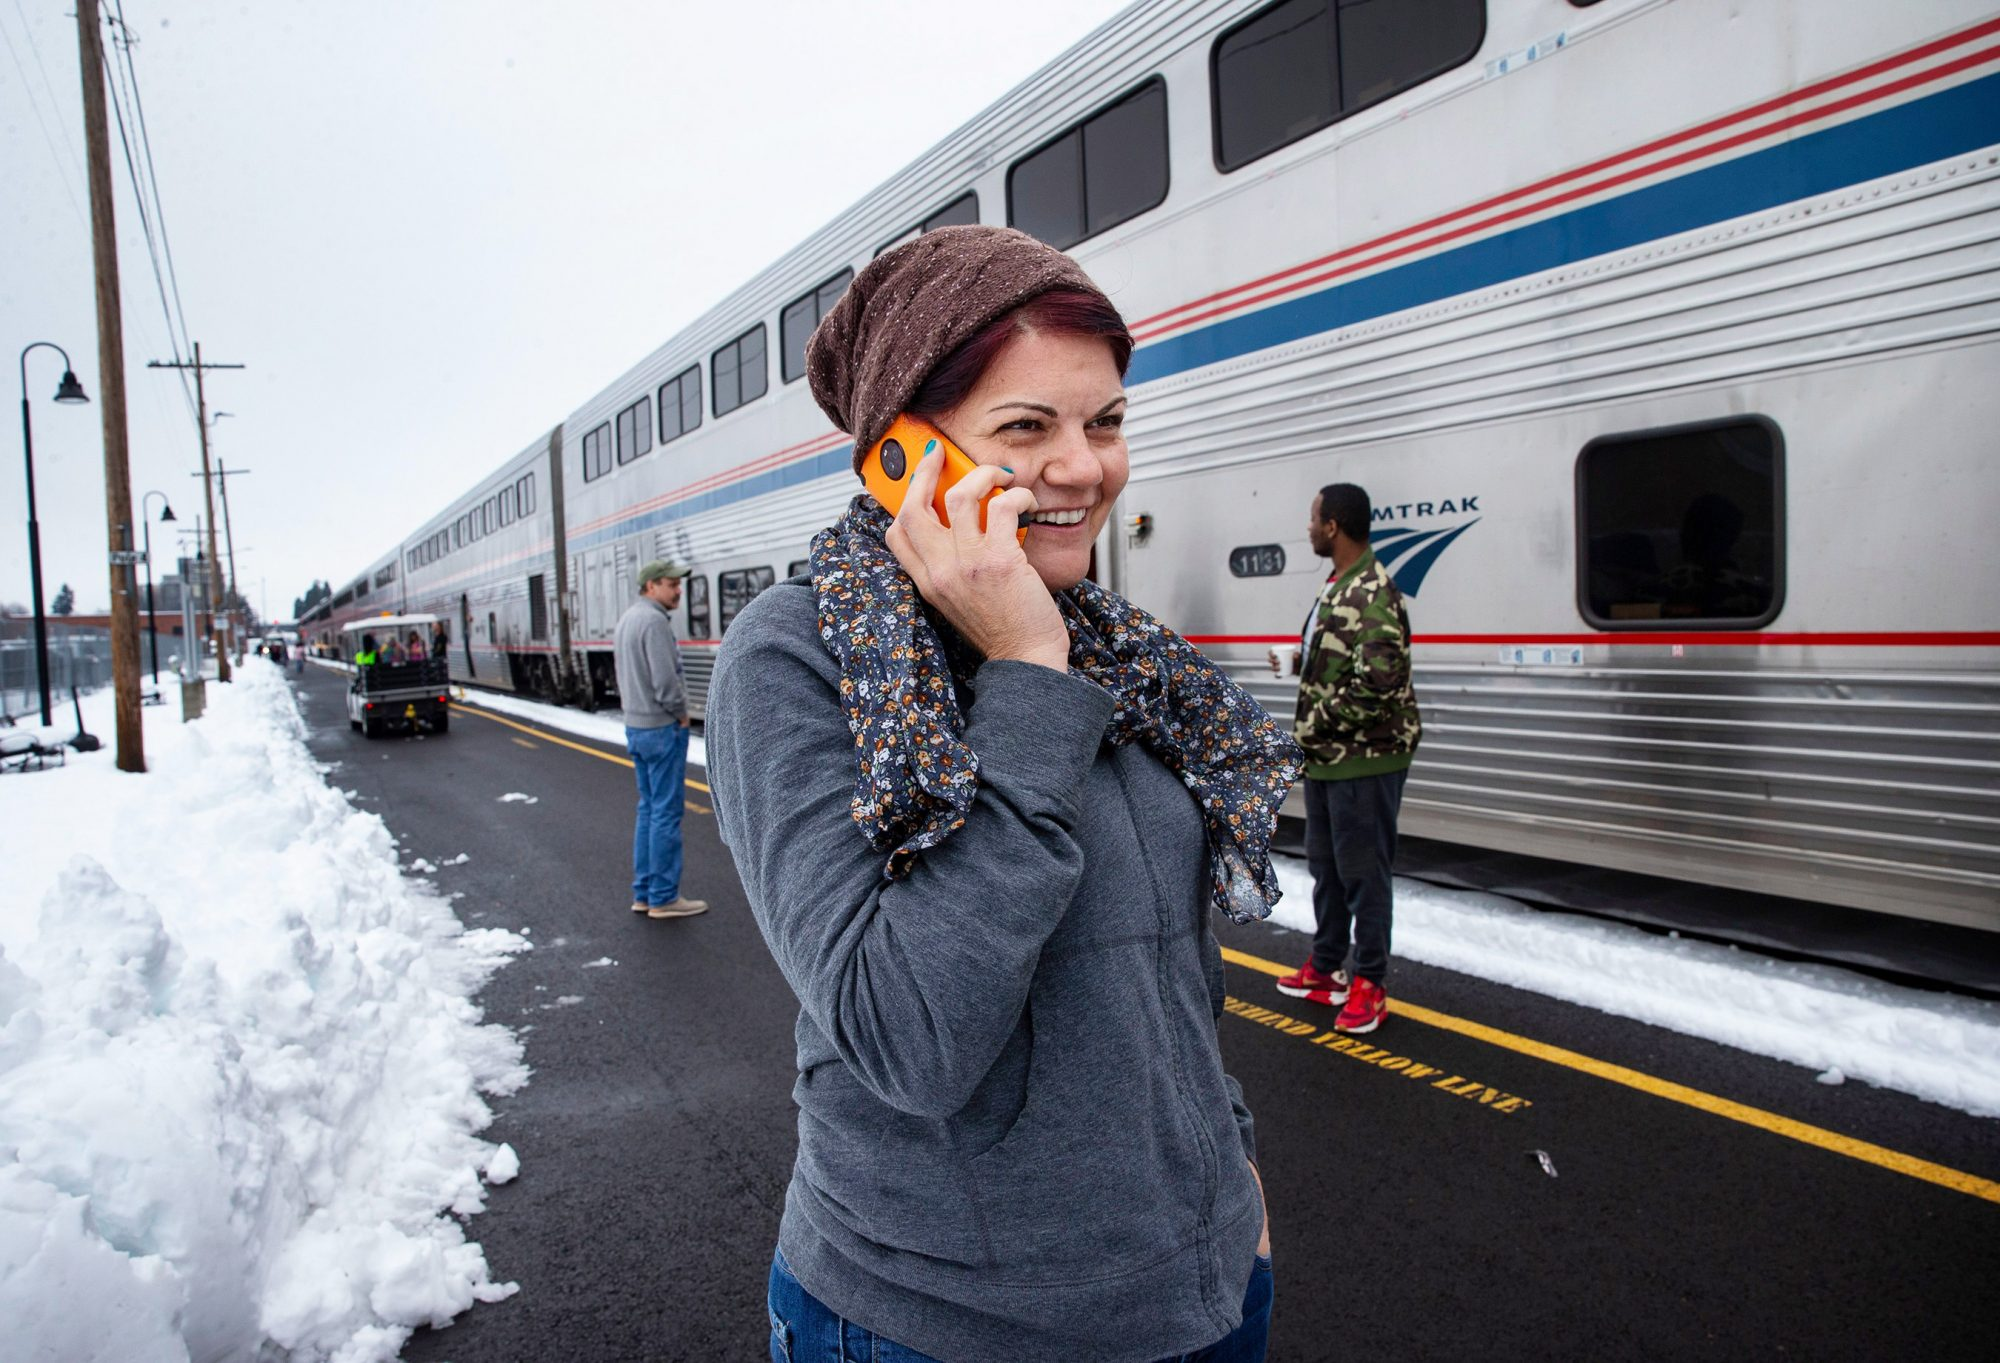 Stranded Amtrak Train, Eugene, USA - 26 Feb 2019